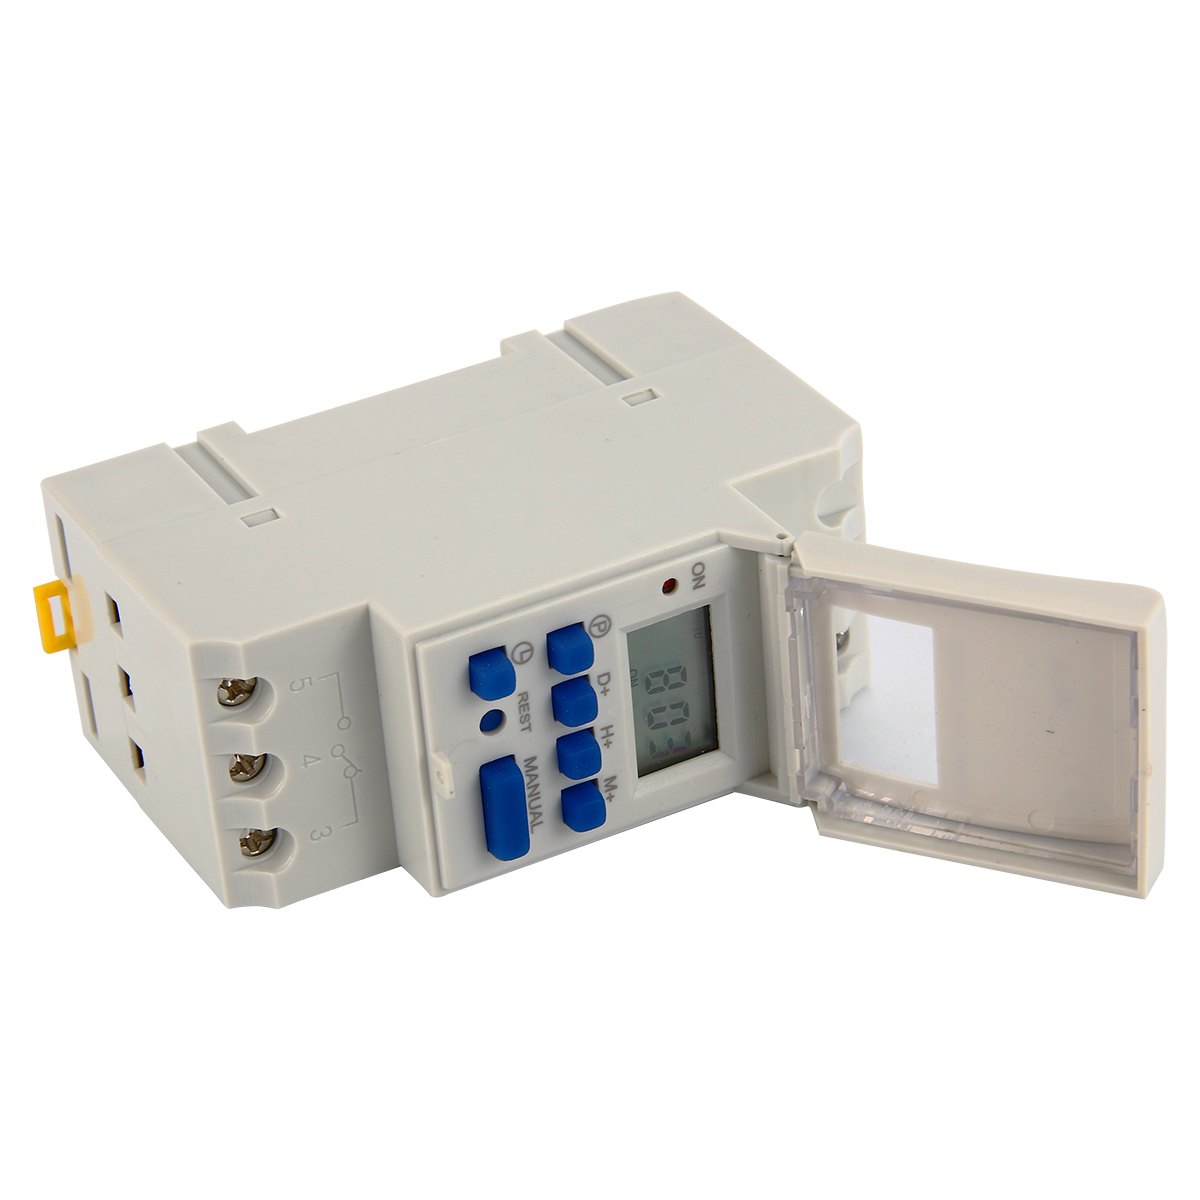 Electrical LCD Power Programmable Digital Timer Relay Power Switch Time Relay AC 220-240V (8)16A Din Rail Mount BI117 5pcs lot x din rail time relay switch digital lcd power programmable timer dc 12v 16a